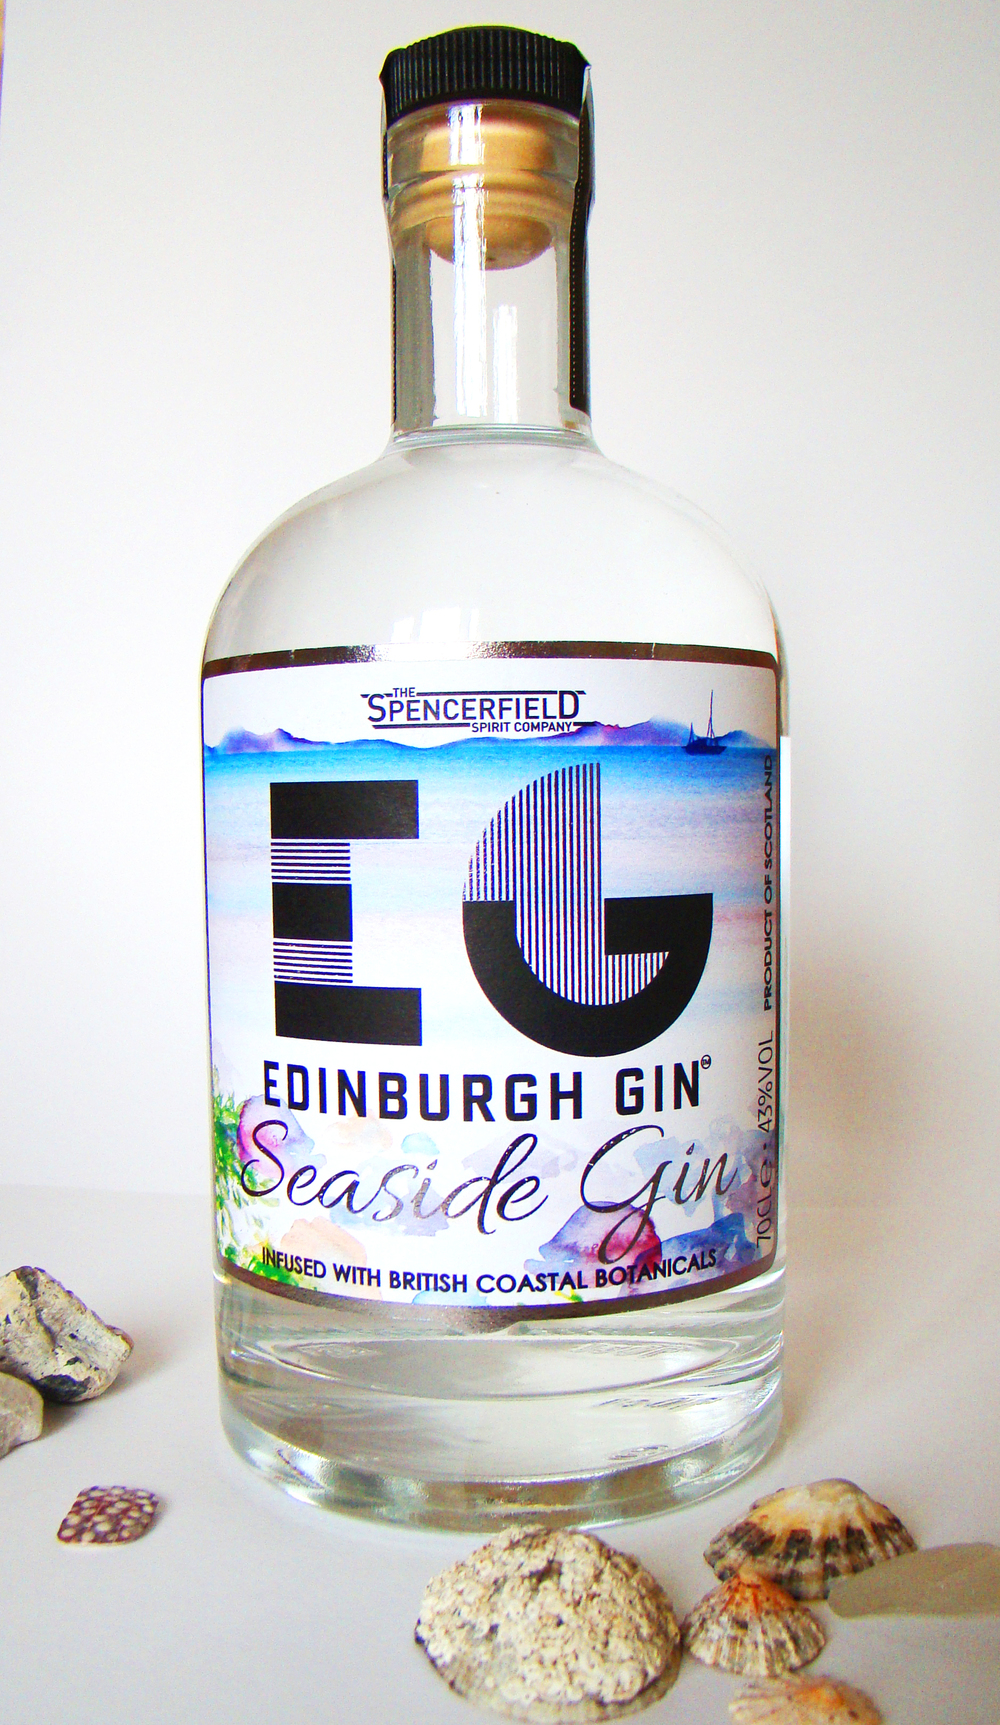 A commission for a limited edition bottle of Seaside Gin for Edinburgh Gin.